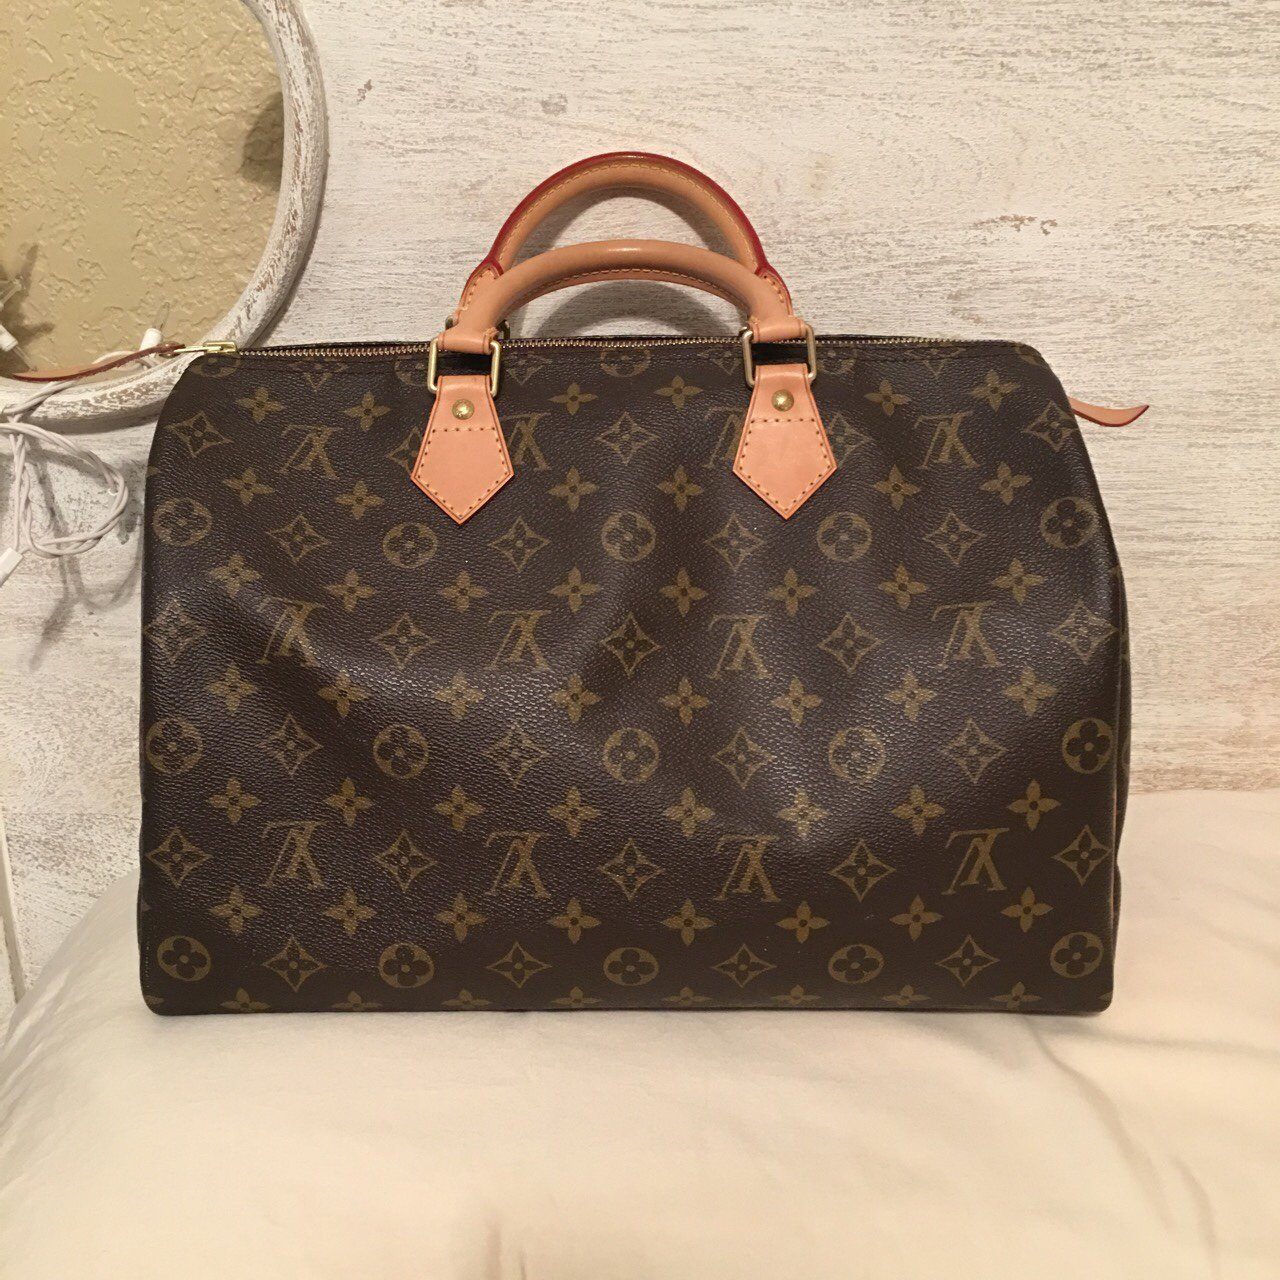 f0bb52f1b04463 Louis Vuitton speedy 35 in excellent condition. This bag has - Depop